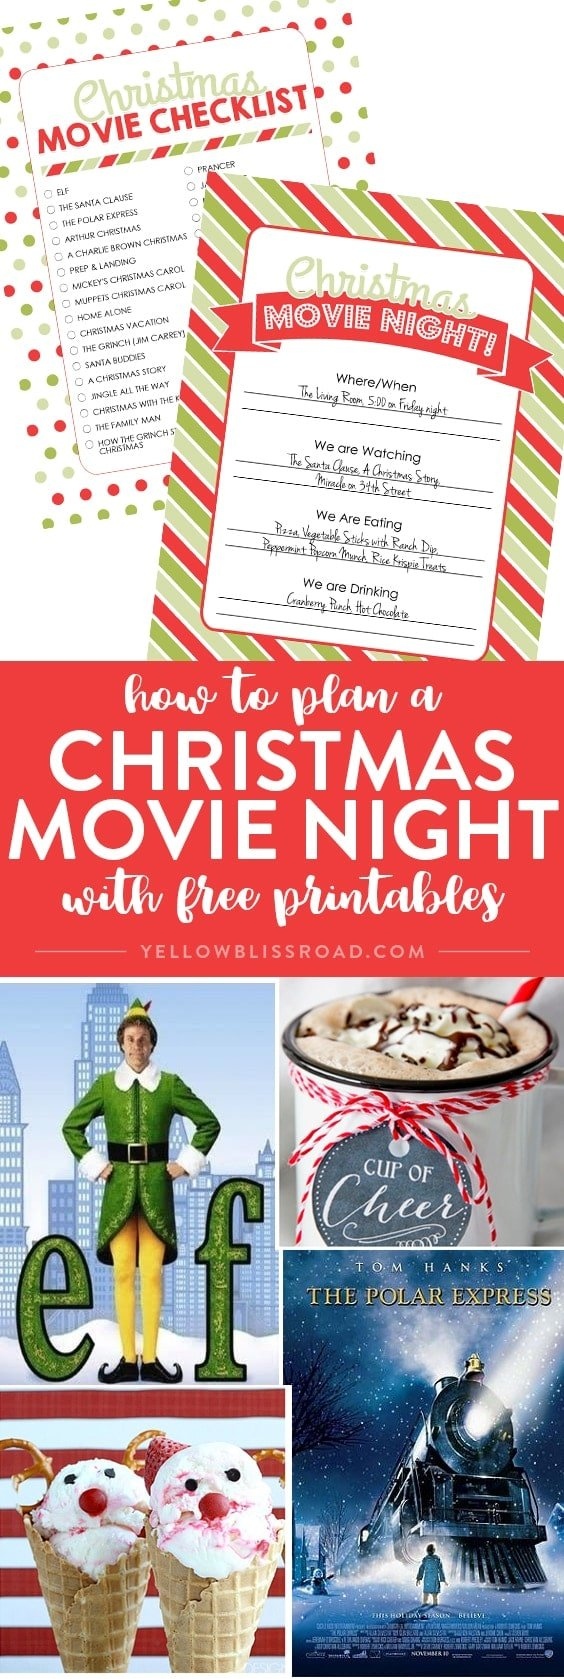 how-to-plan-a-christmas-movie-night-with-free-printables